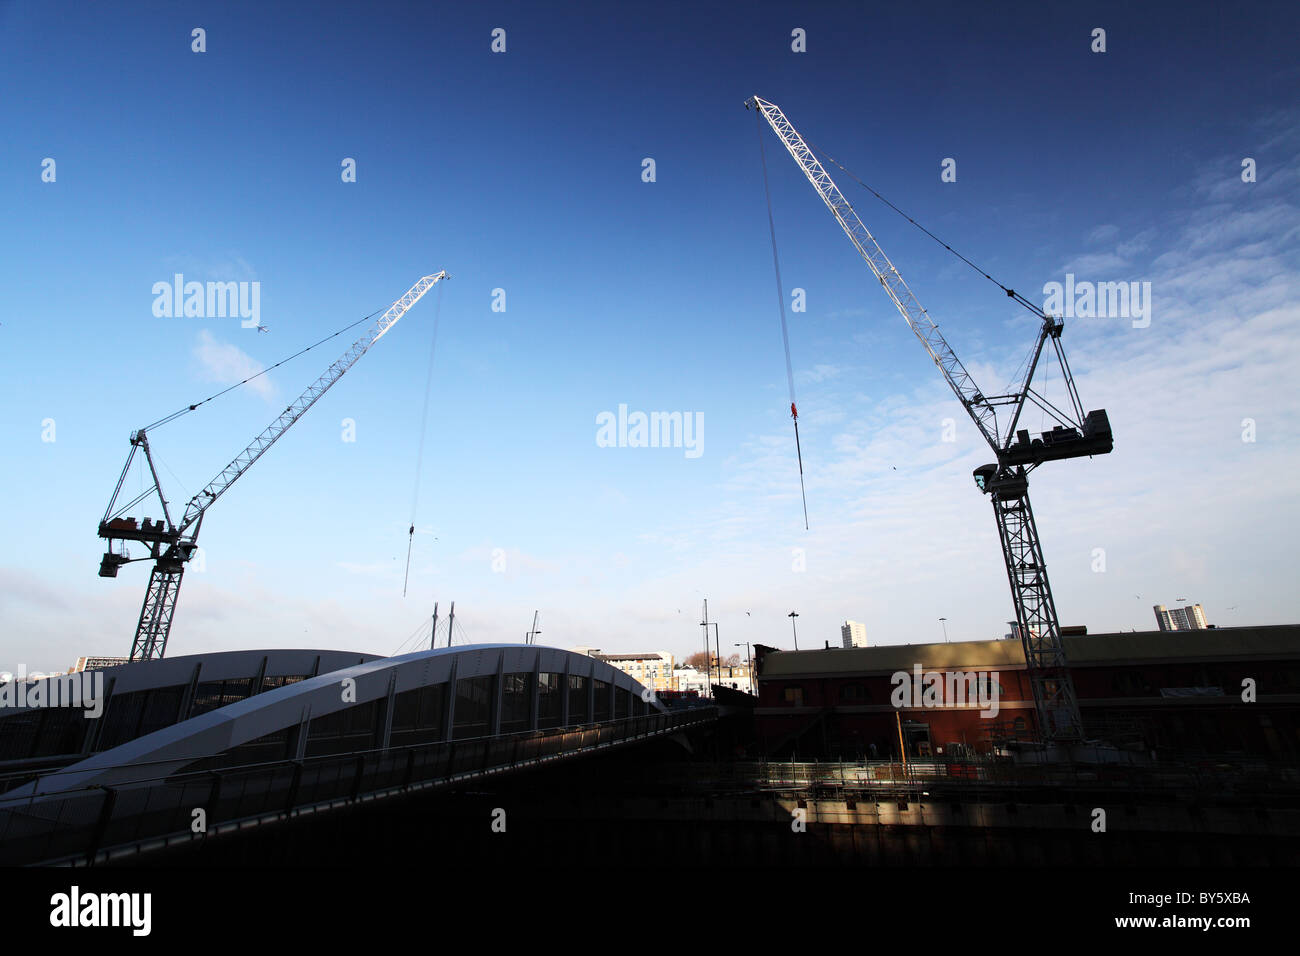 Cranes at work in the docklands. Canary Wharf, London - Stock Image